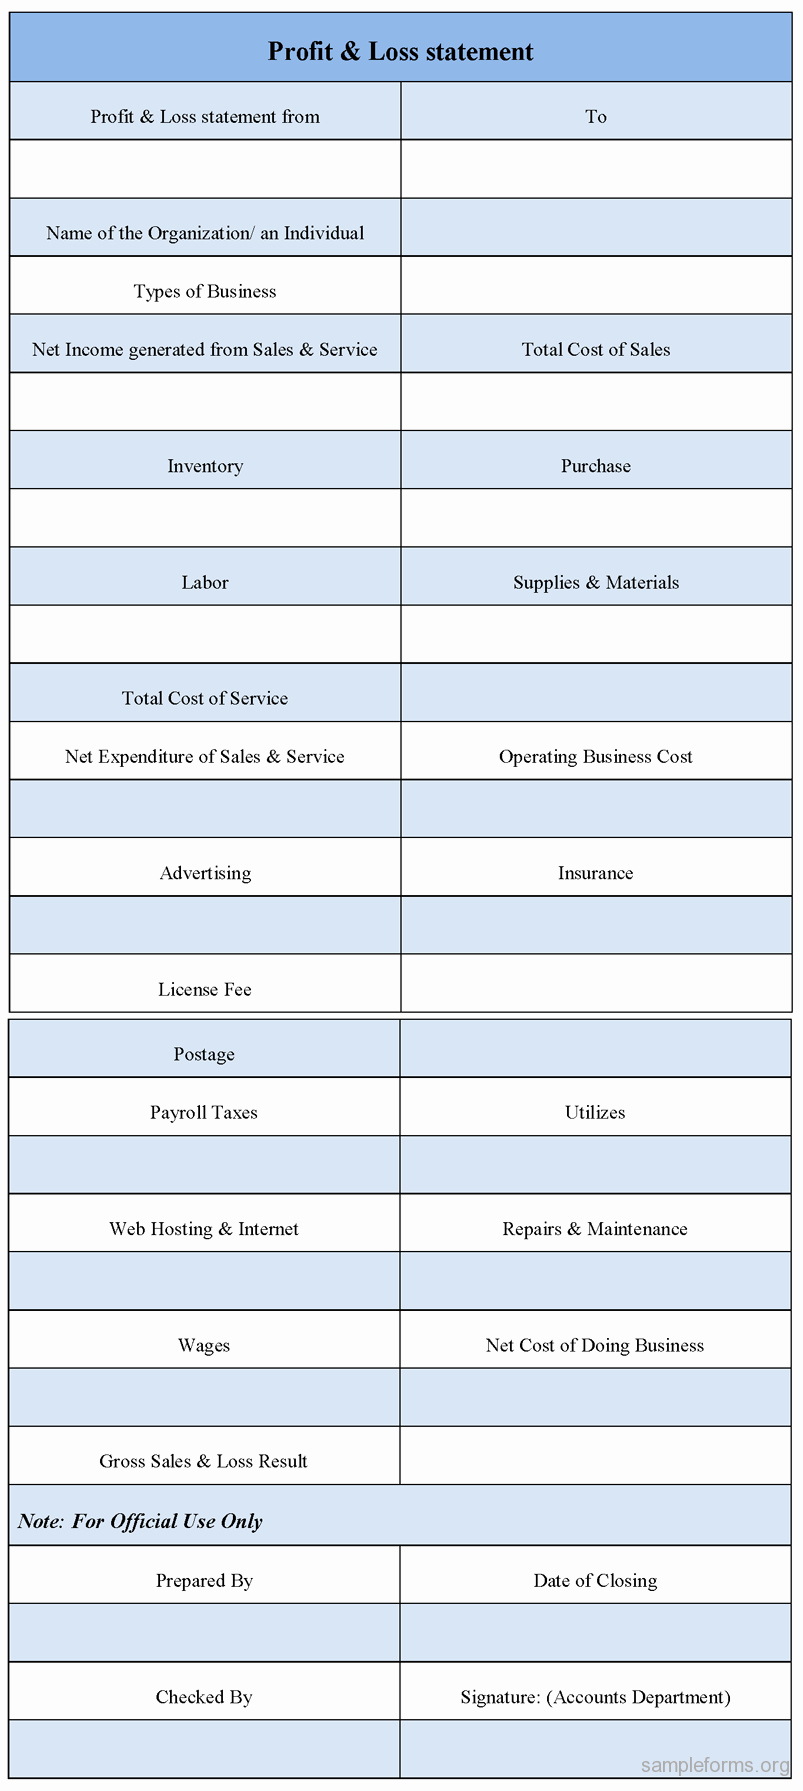 Profit and Loss Sheet Examples Inspirational Profit and Loss Statement form Sample forms